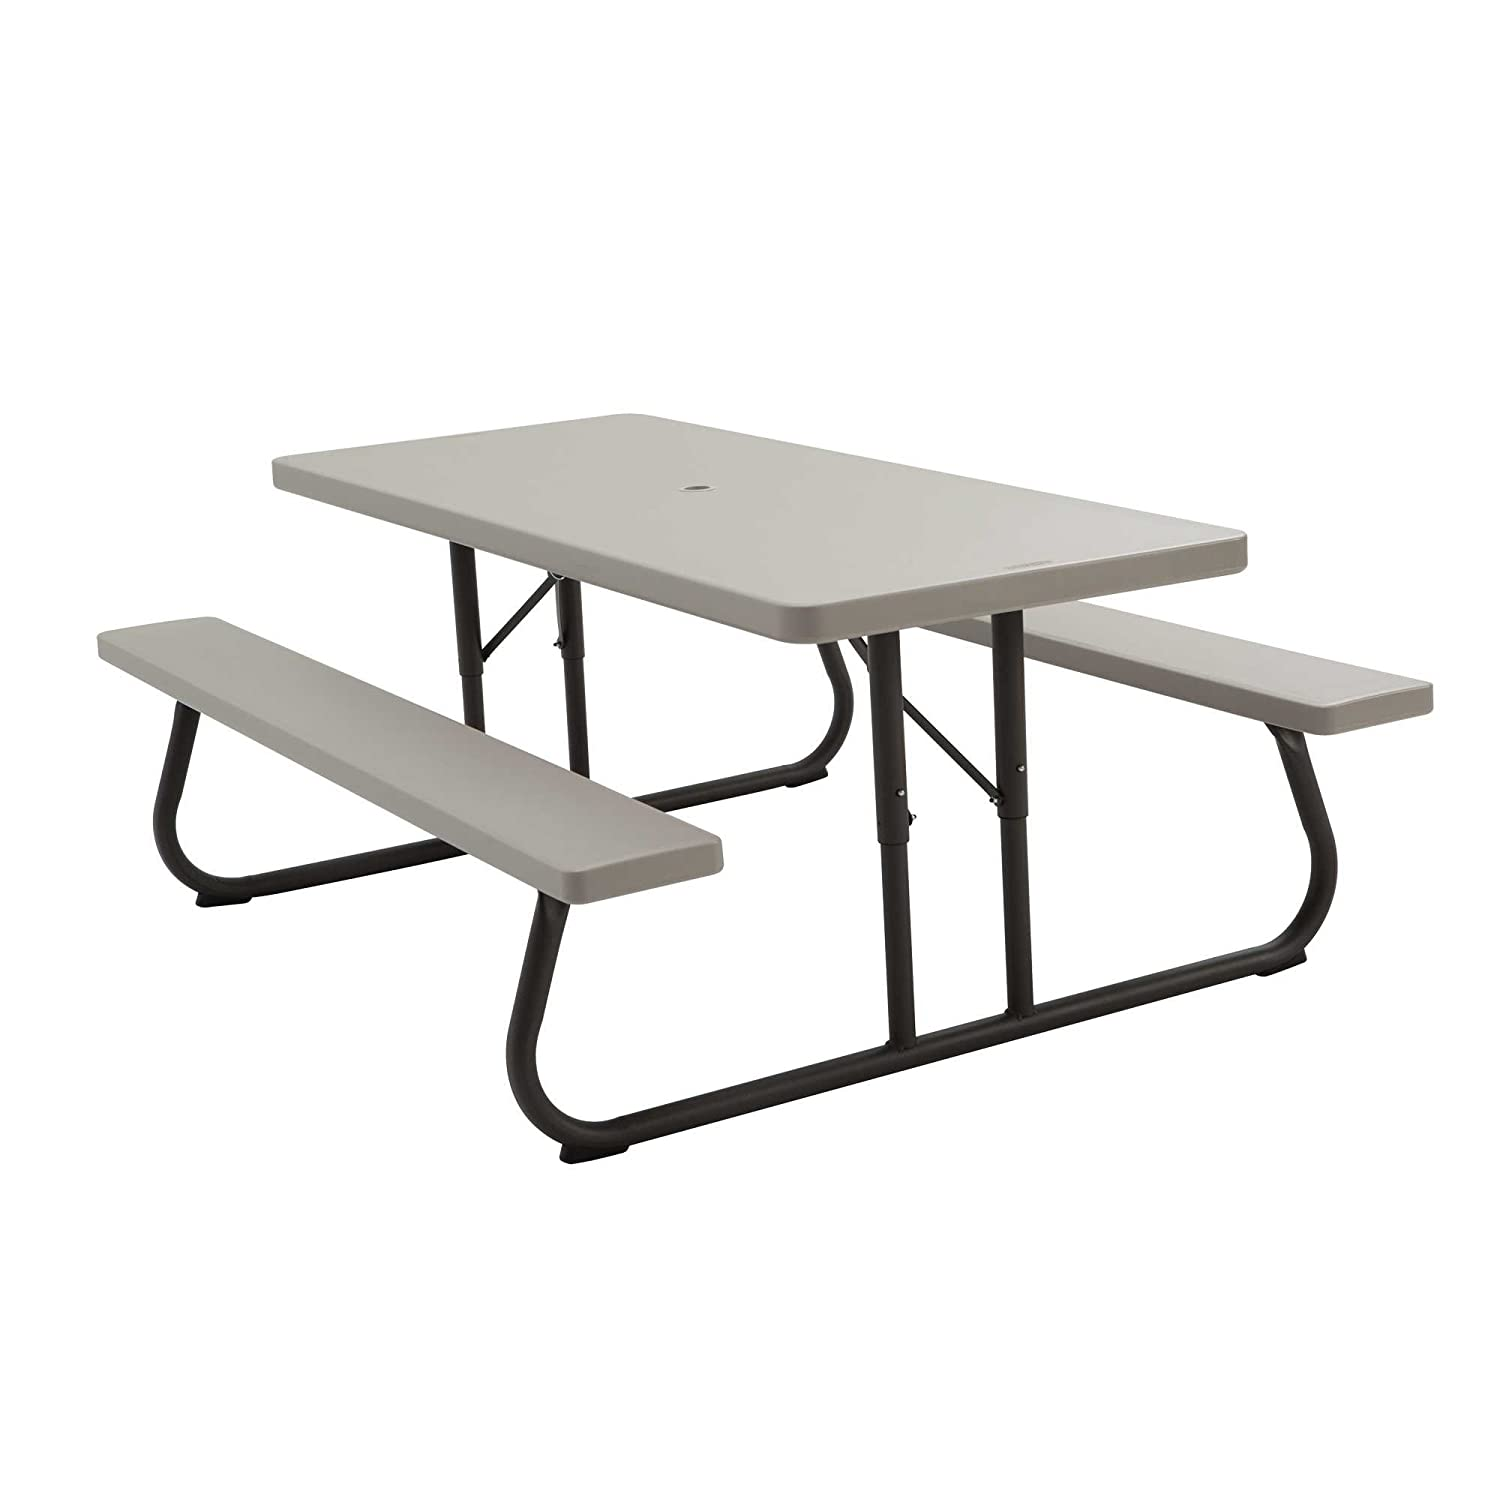 Picnic Tables Amazoncom - Picnic table los angeles